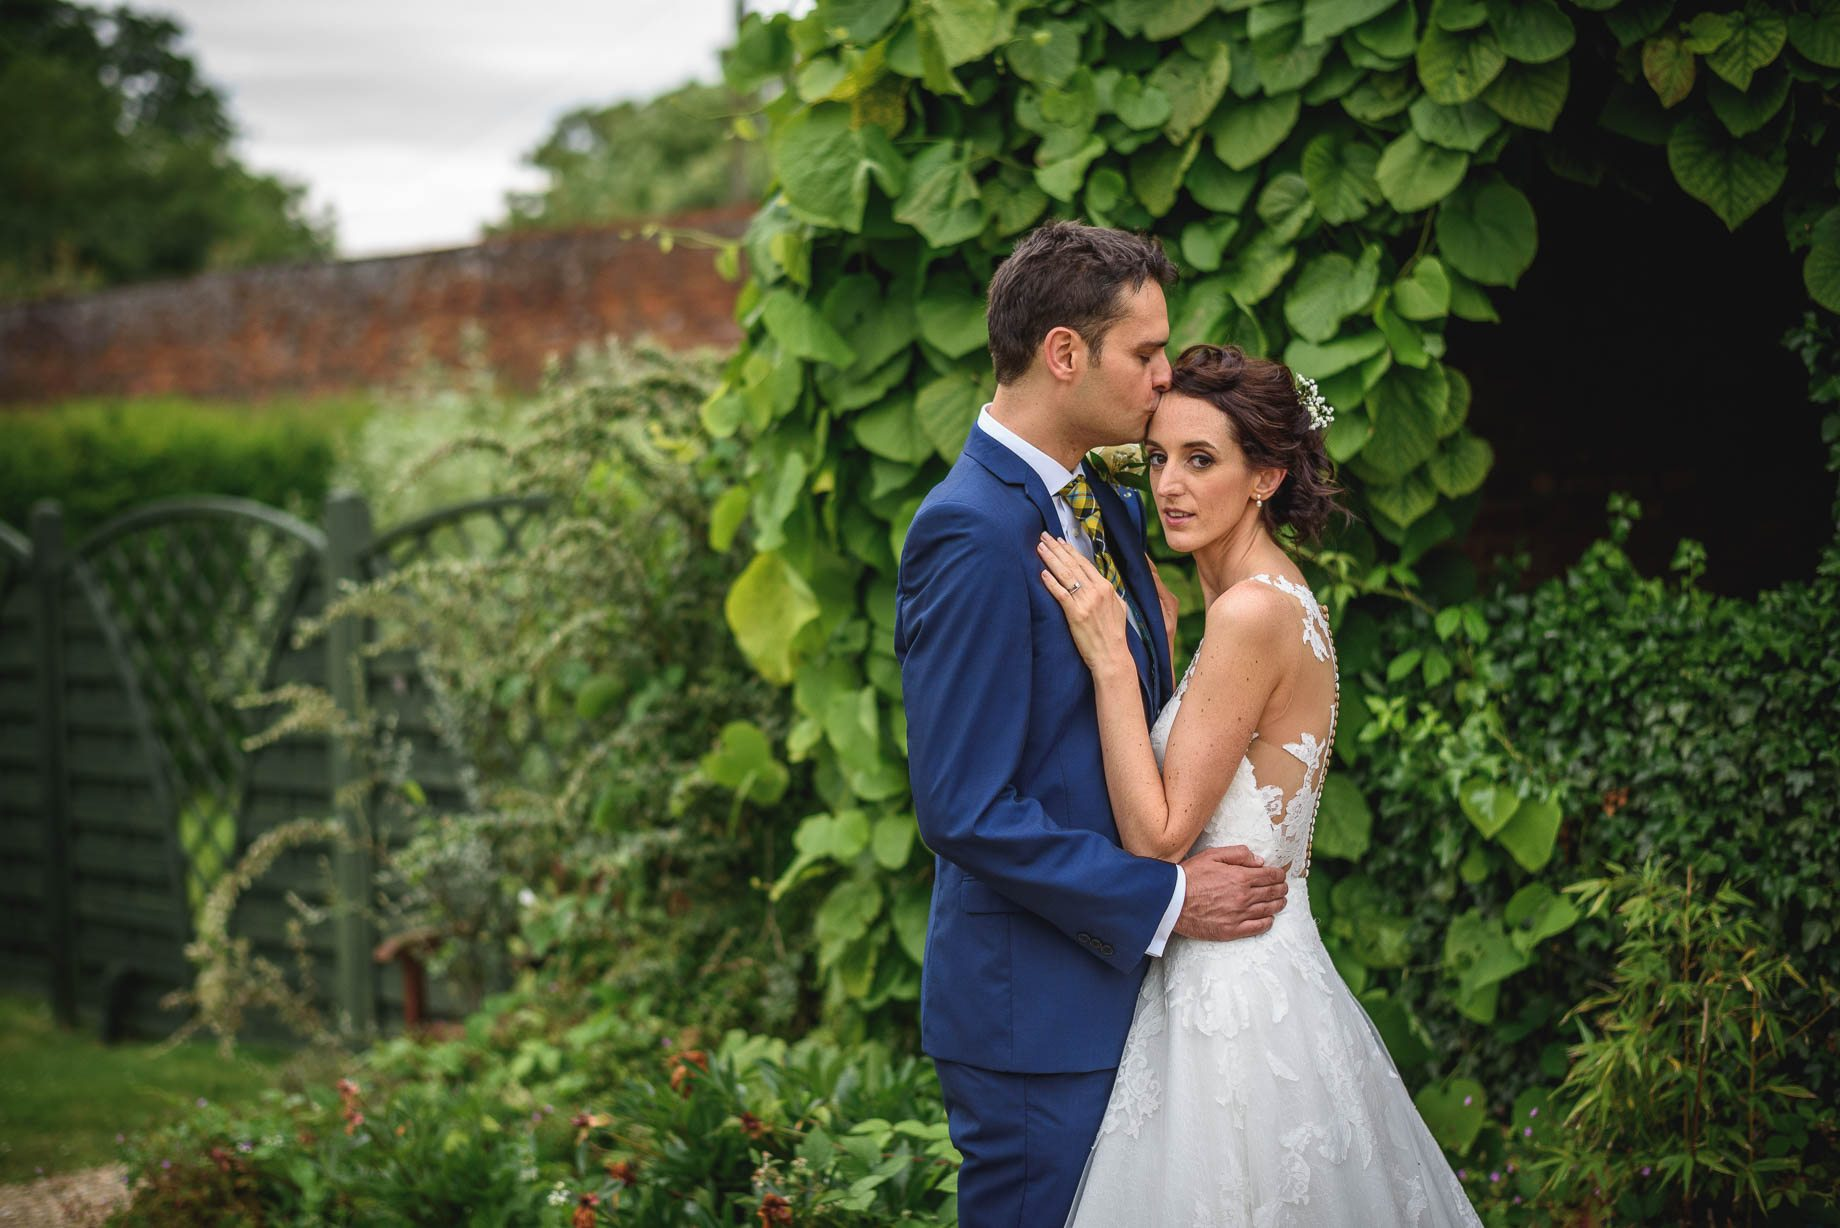 Hertfordshire wedding photography - Sarah and Stephen by Guy Collier Photography (141 of 161)